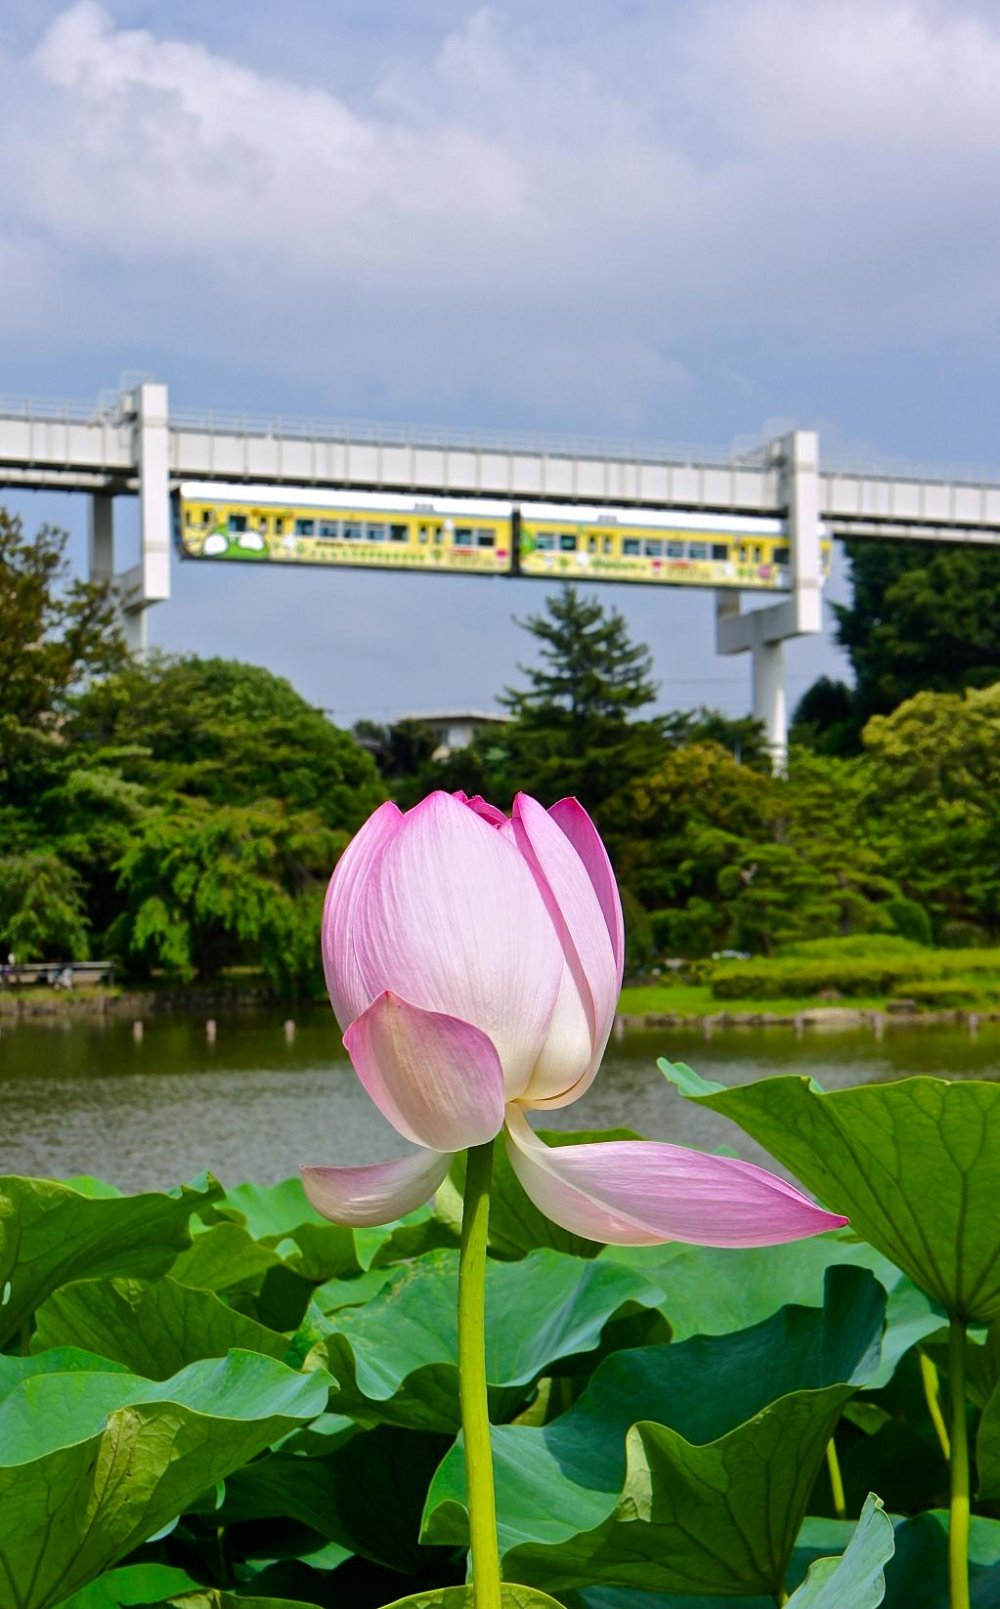 Lotus flowers on backdrop of a passing monorail